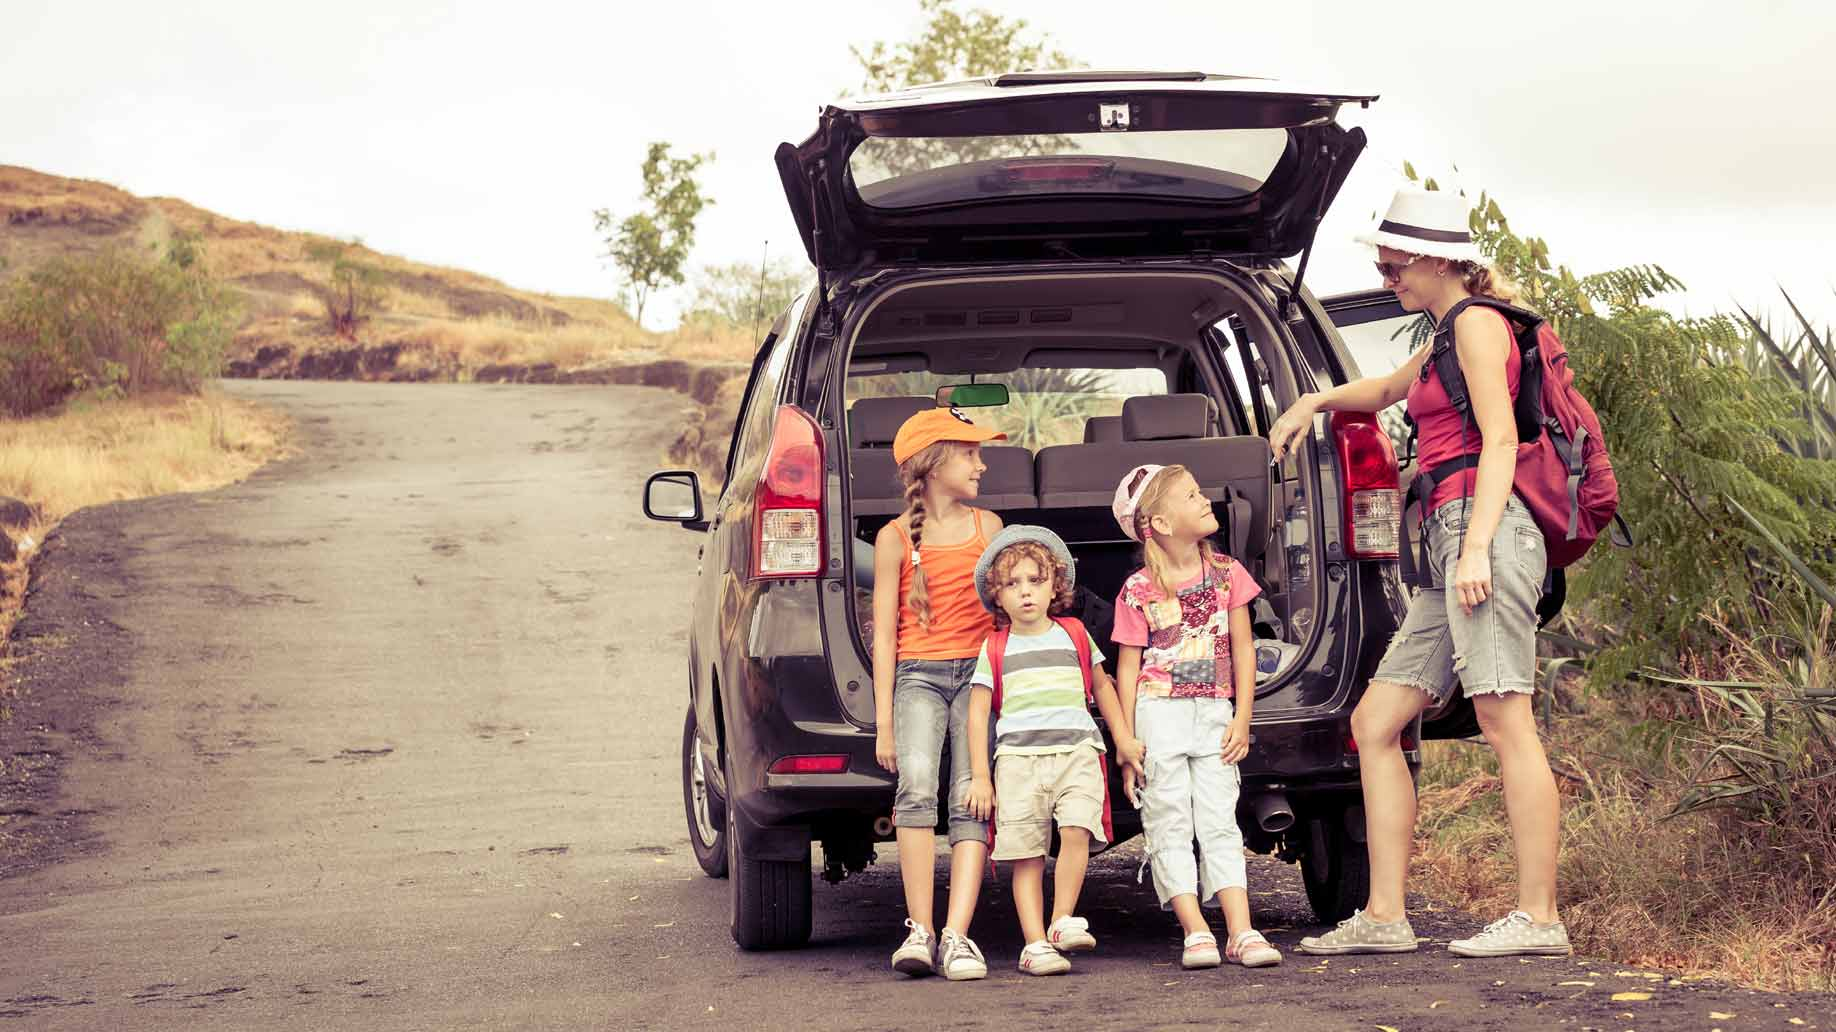 Funny Word Games for Kids on the Road